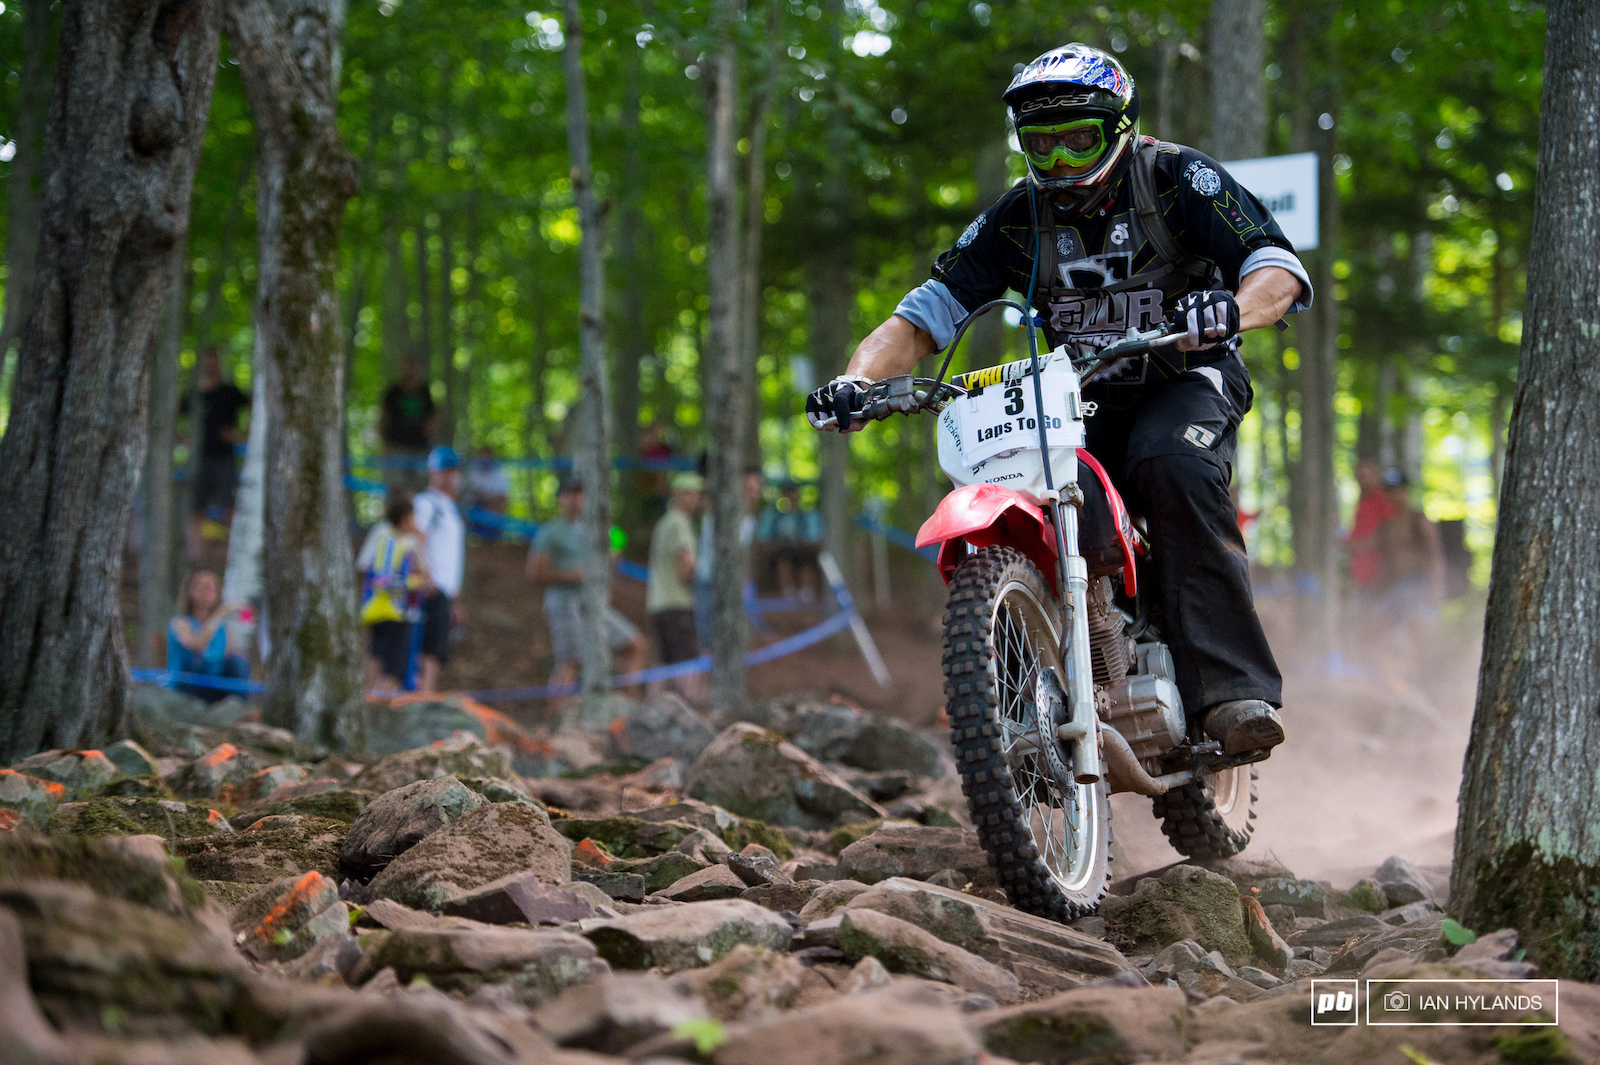 Huge shout out to Jay de Jesus he rode lead moto for all the XC races that s a lot of laps